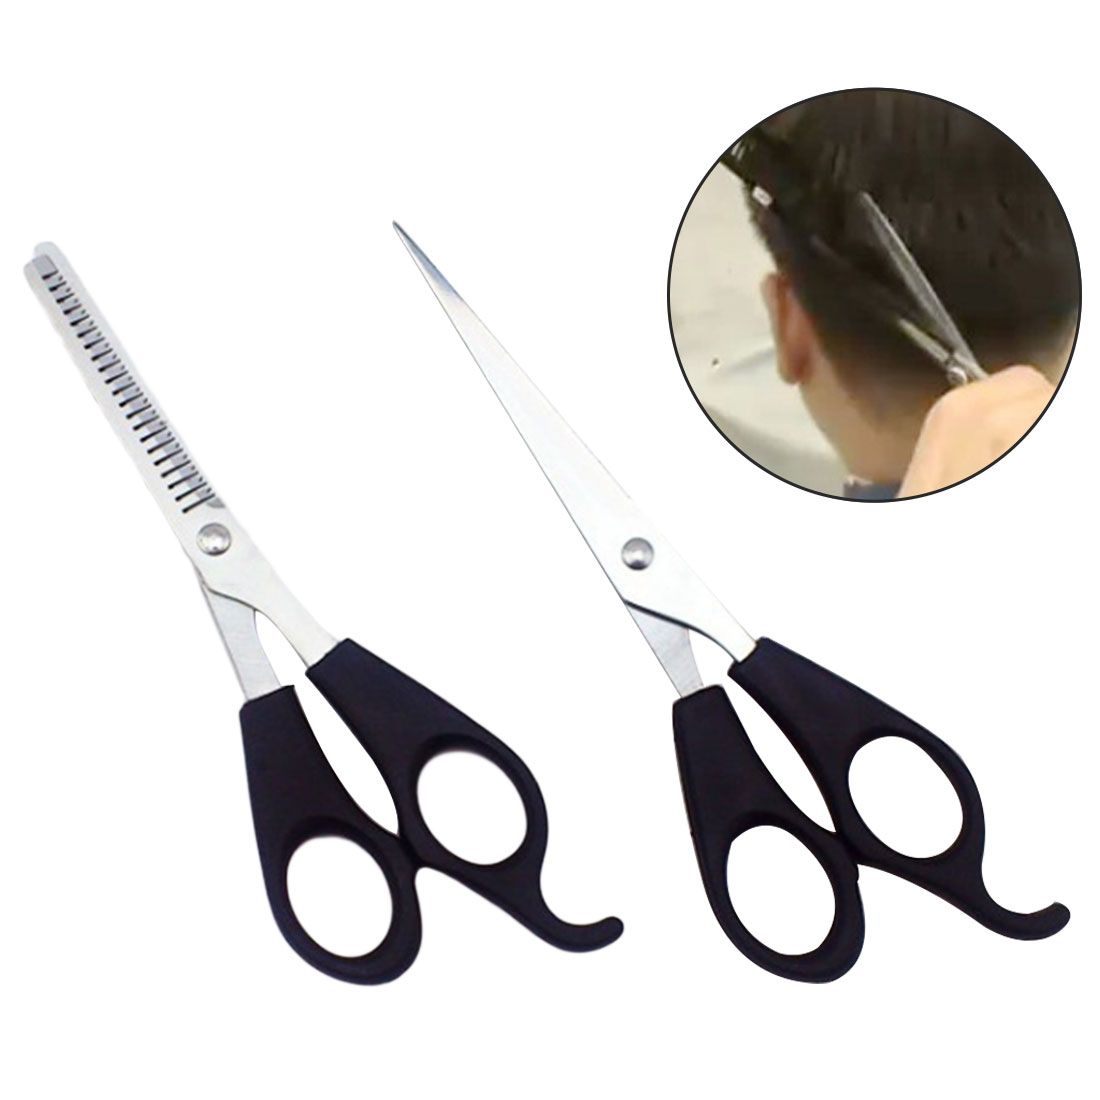 High Quality Stainless Steel  Barber Hair Cutting Thinning Scissors Shears Hair Cutting Shears Scissors Set Salon Tools 2Pcs/set